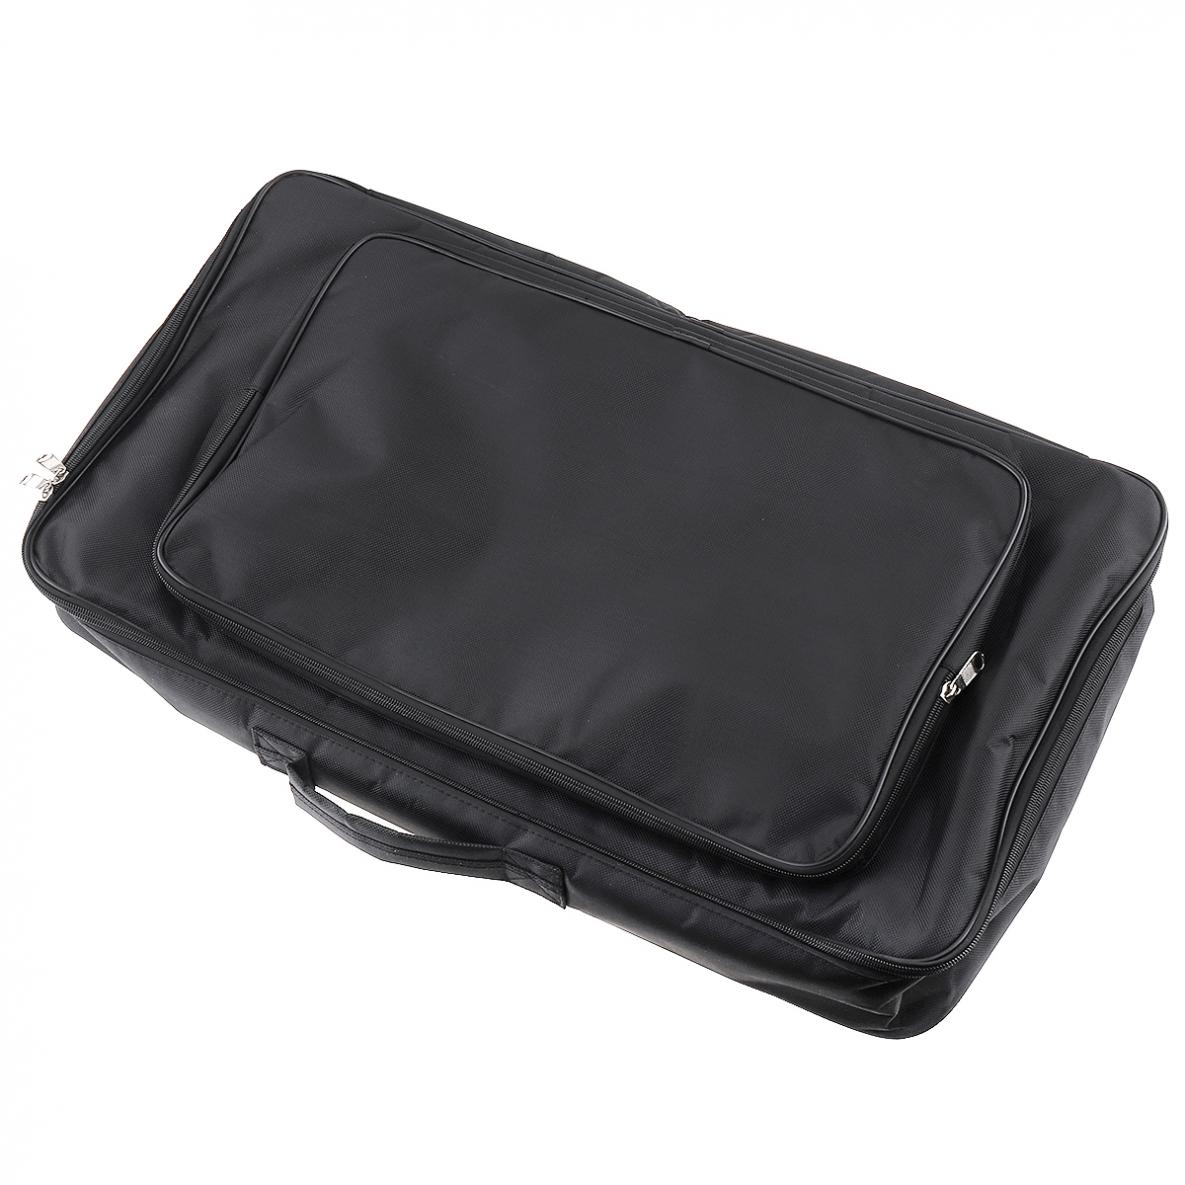 60 33 10cm Guitar Bag Universal Portable Guitar Effects Pedal Board Gig Bag Soft Case Big Style DIY Guitar Pedalboard in Guitar Parts Accessories from Sports Entertainment